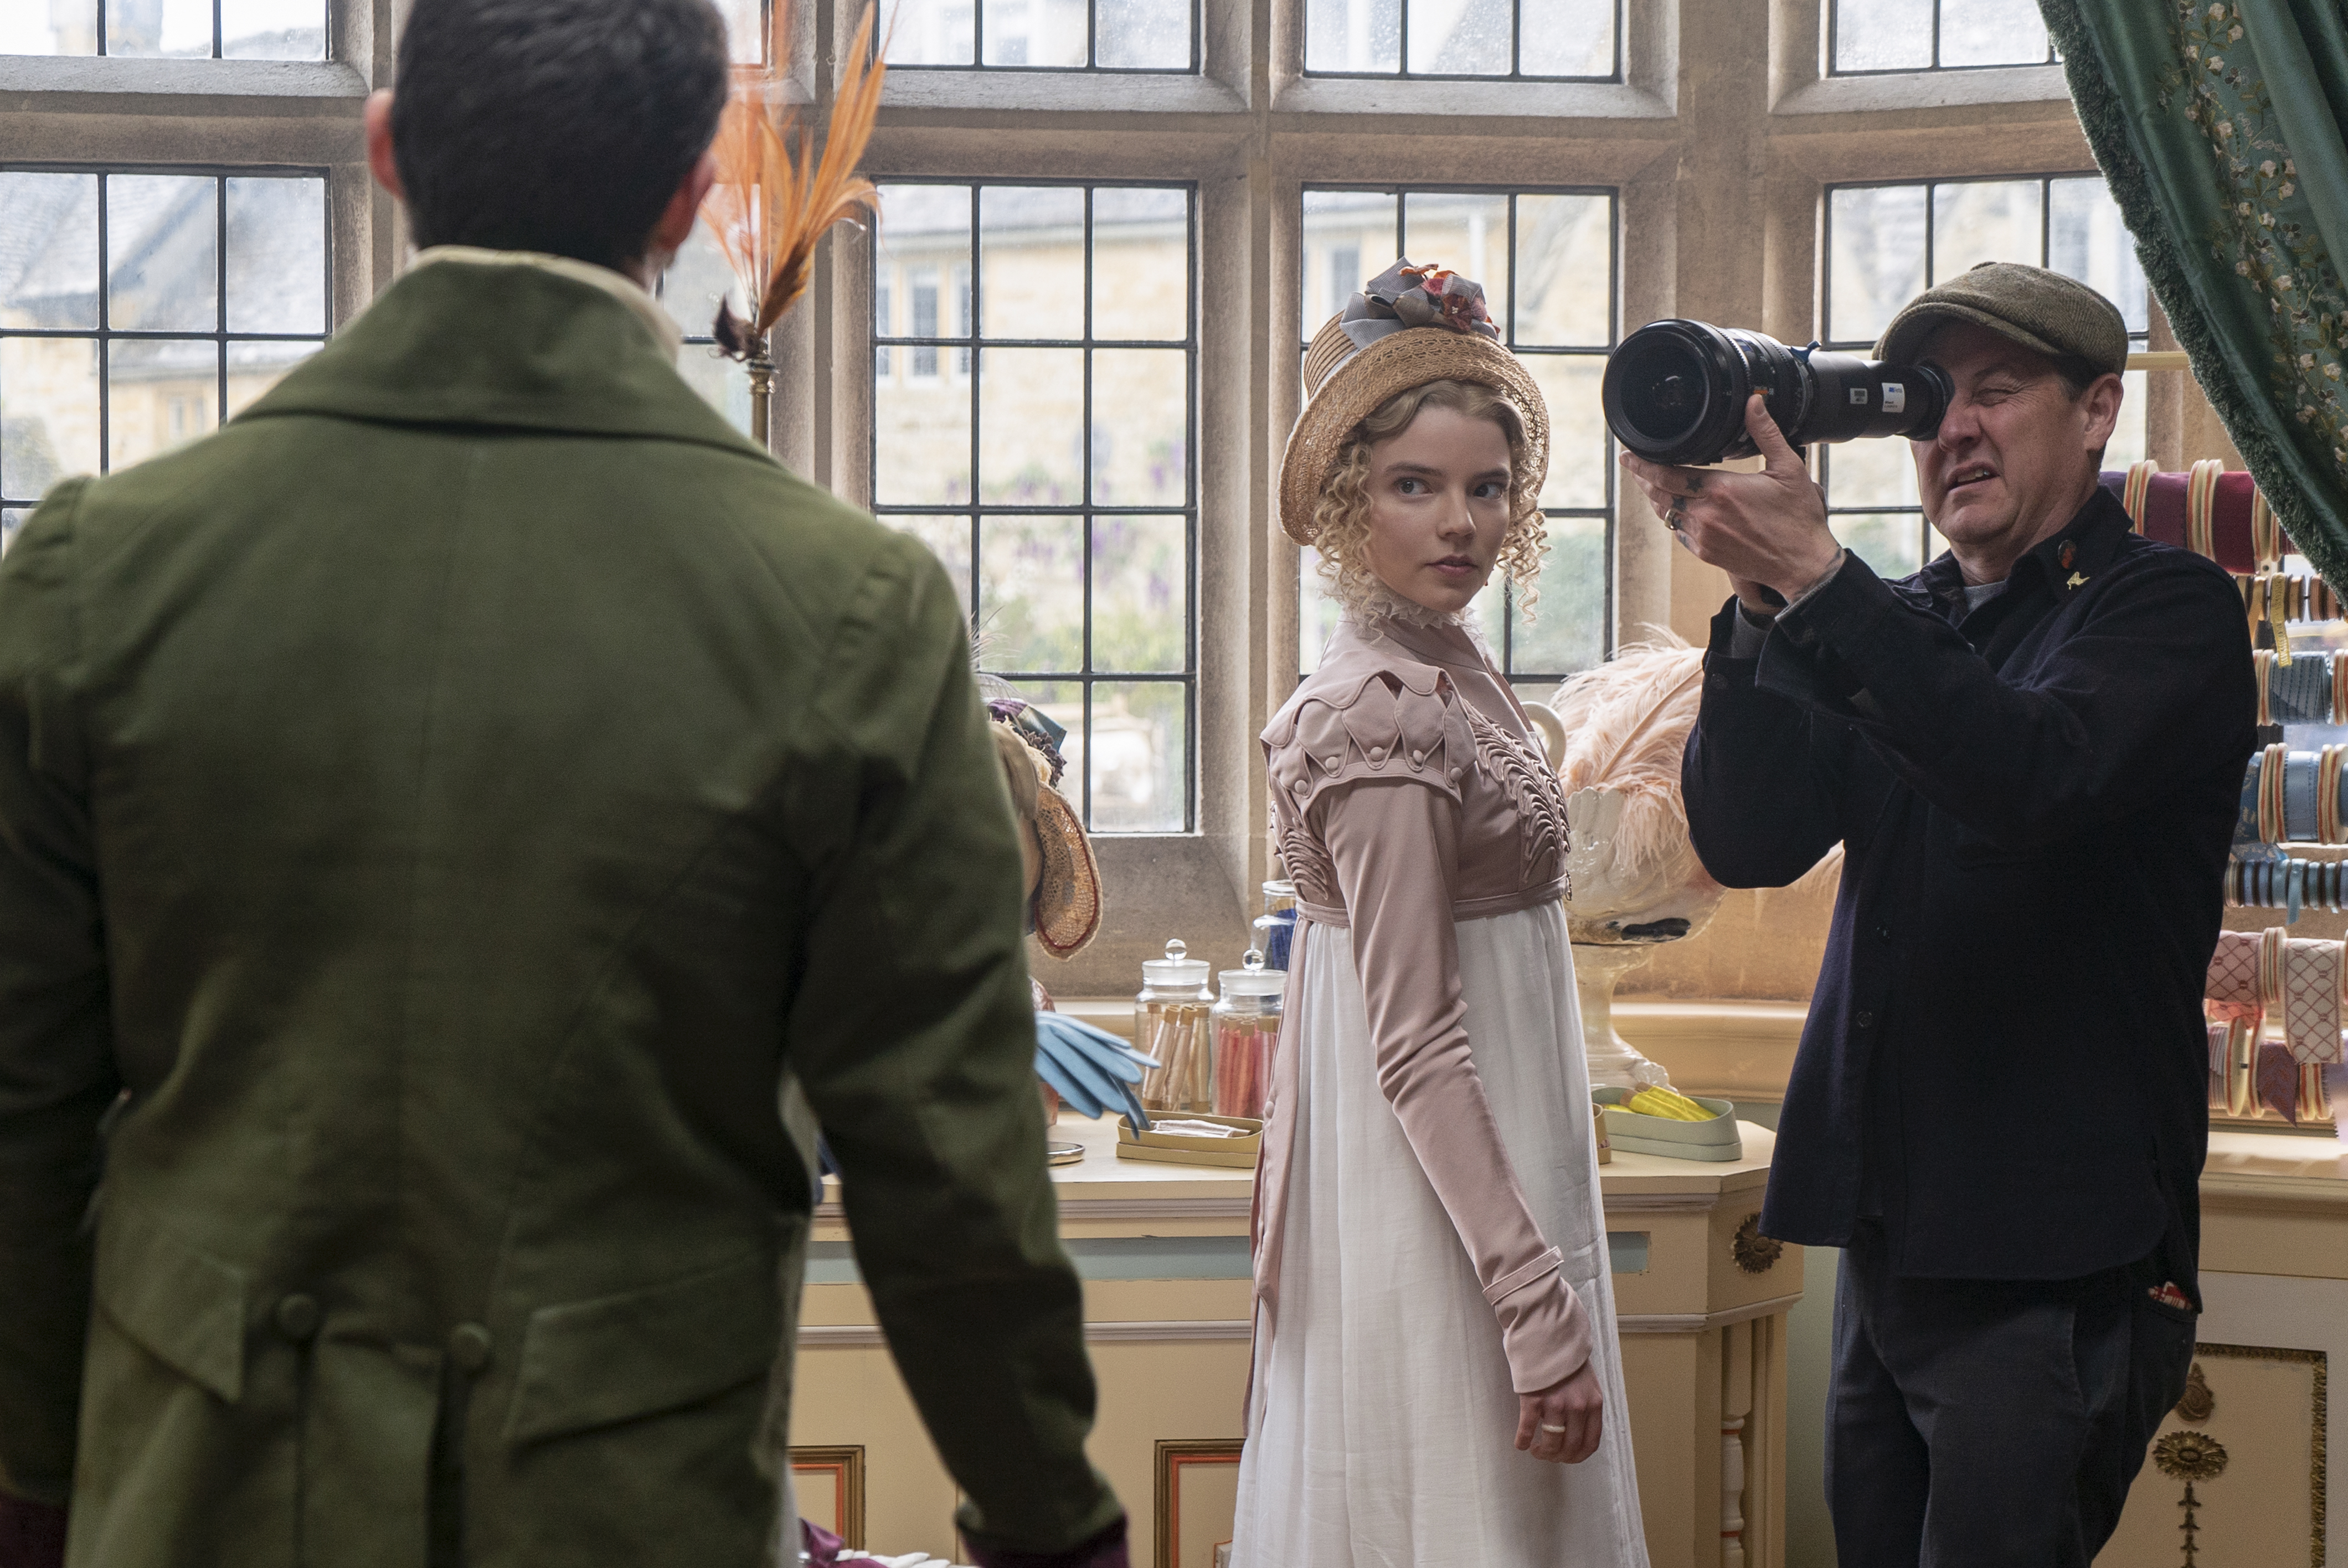 (L to R) Actor Callum Turner, actor Anya Taylor-Joy and director of photography Christopher Blauvelt on the set of EMMA., a Focus Features release. Credit : Liam Daniel / Focus Features